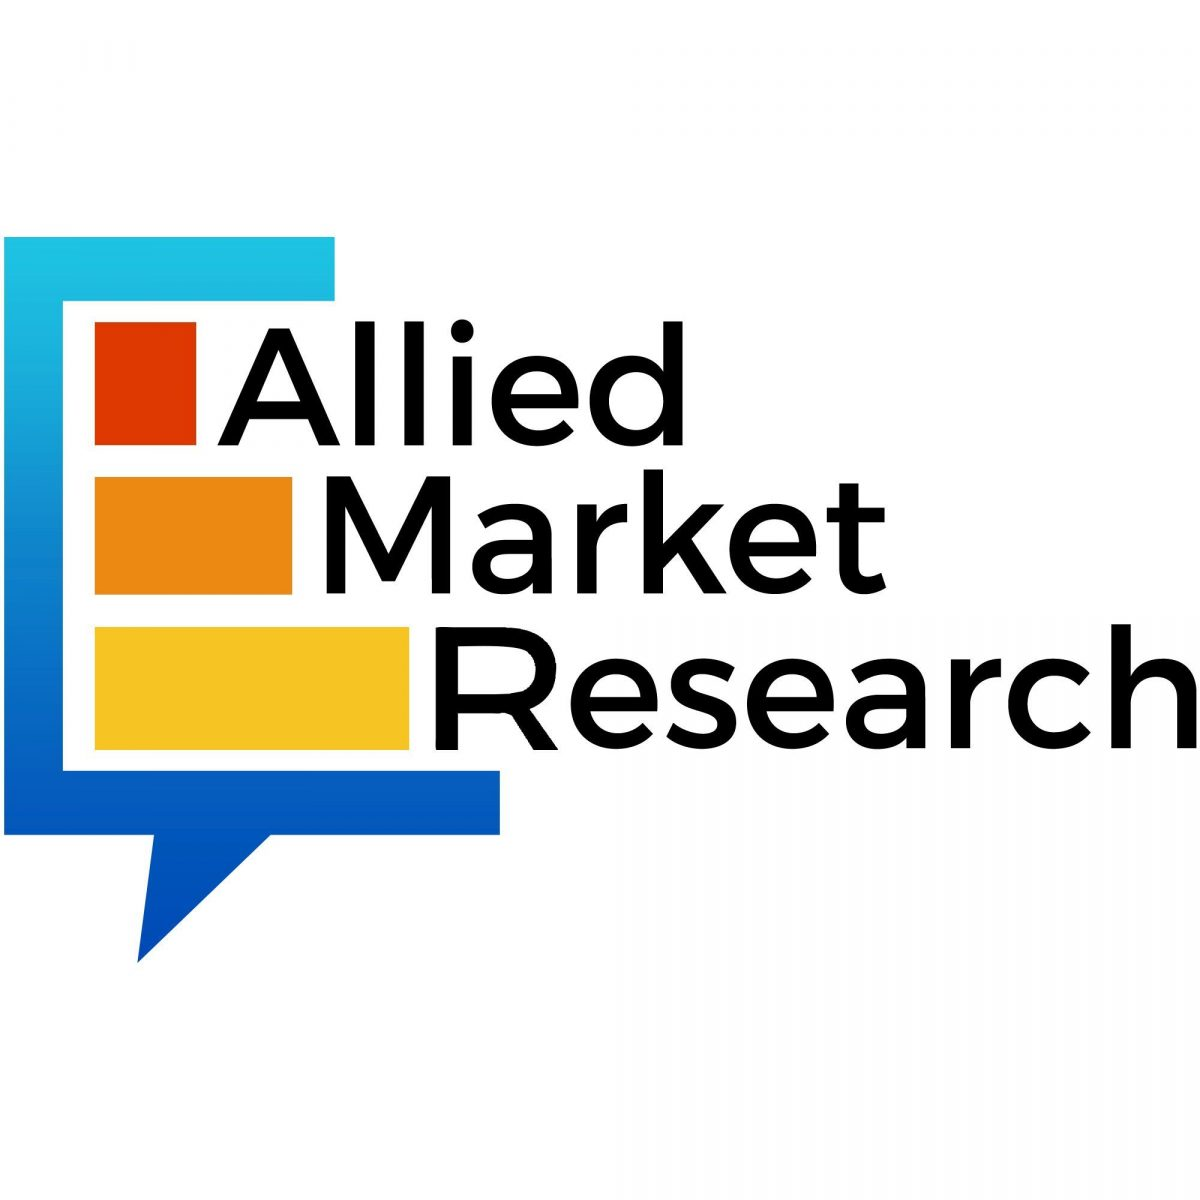 Automotive Differential Market to Reach $28.57 Bn, Globally, by 2026 at 5.2% CAGR: Allied Market Research